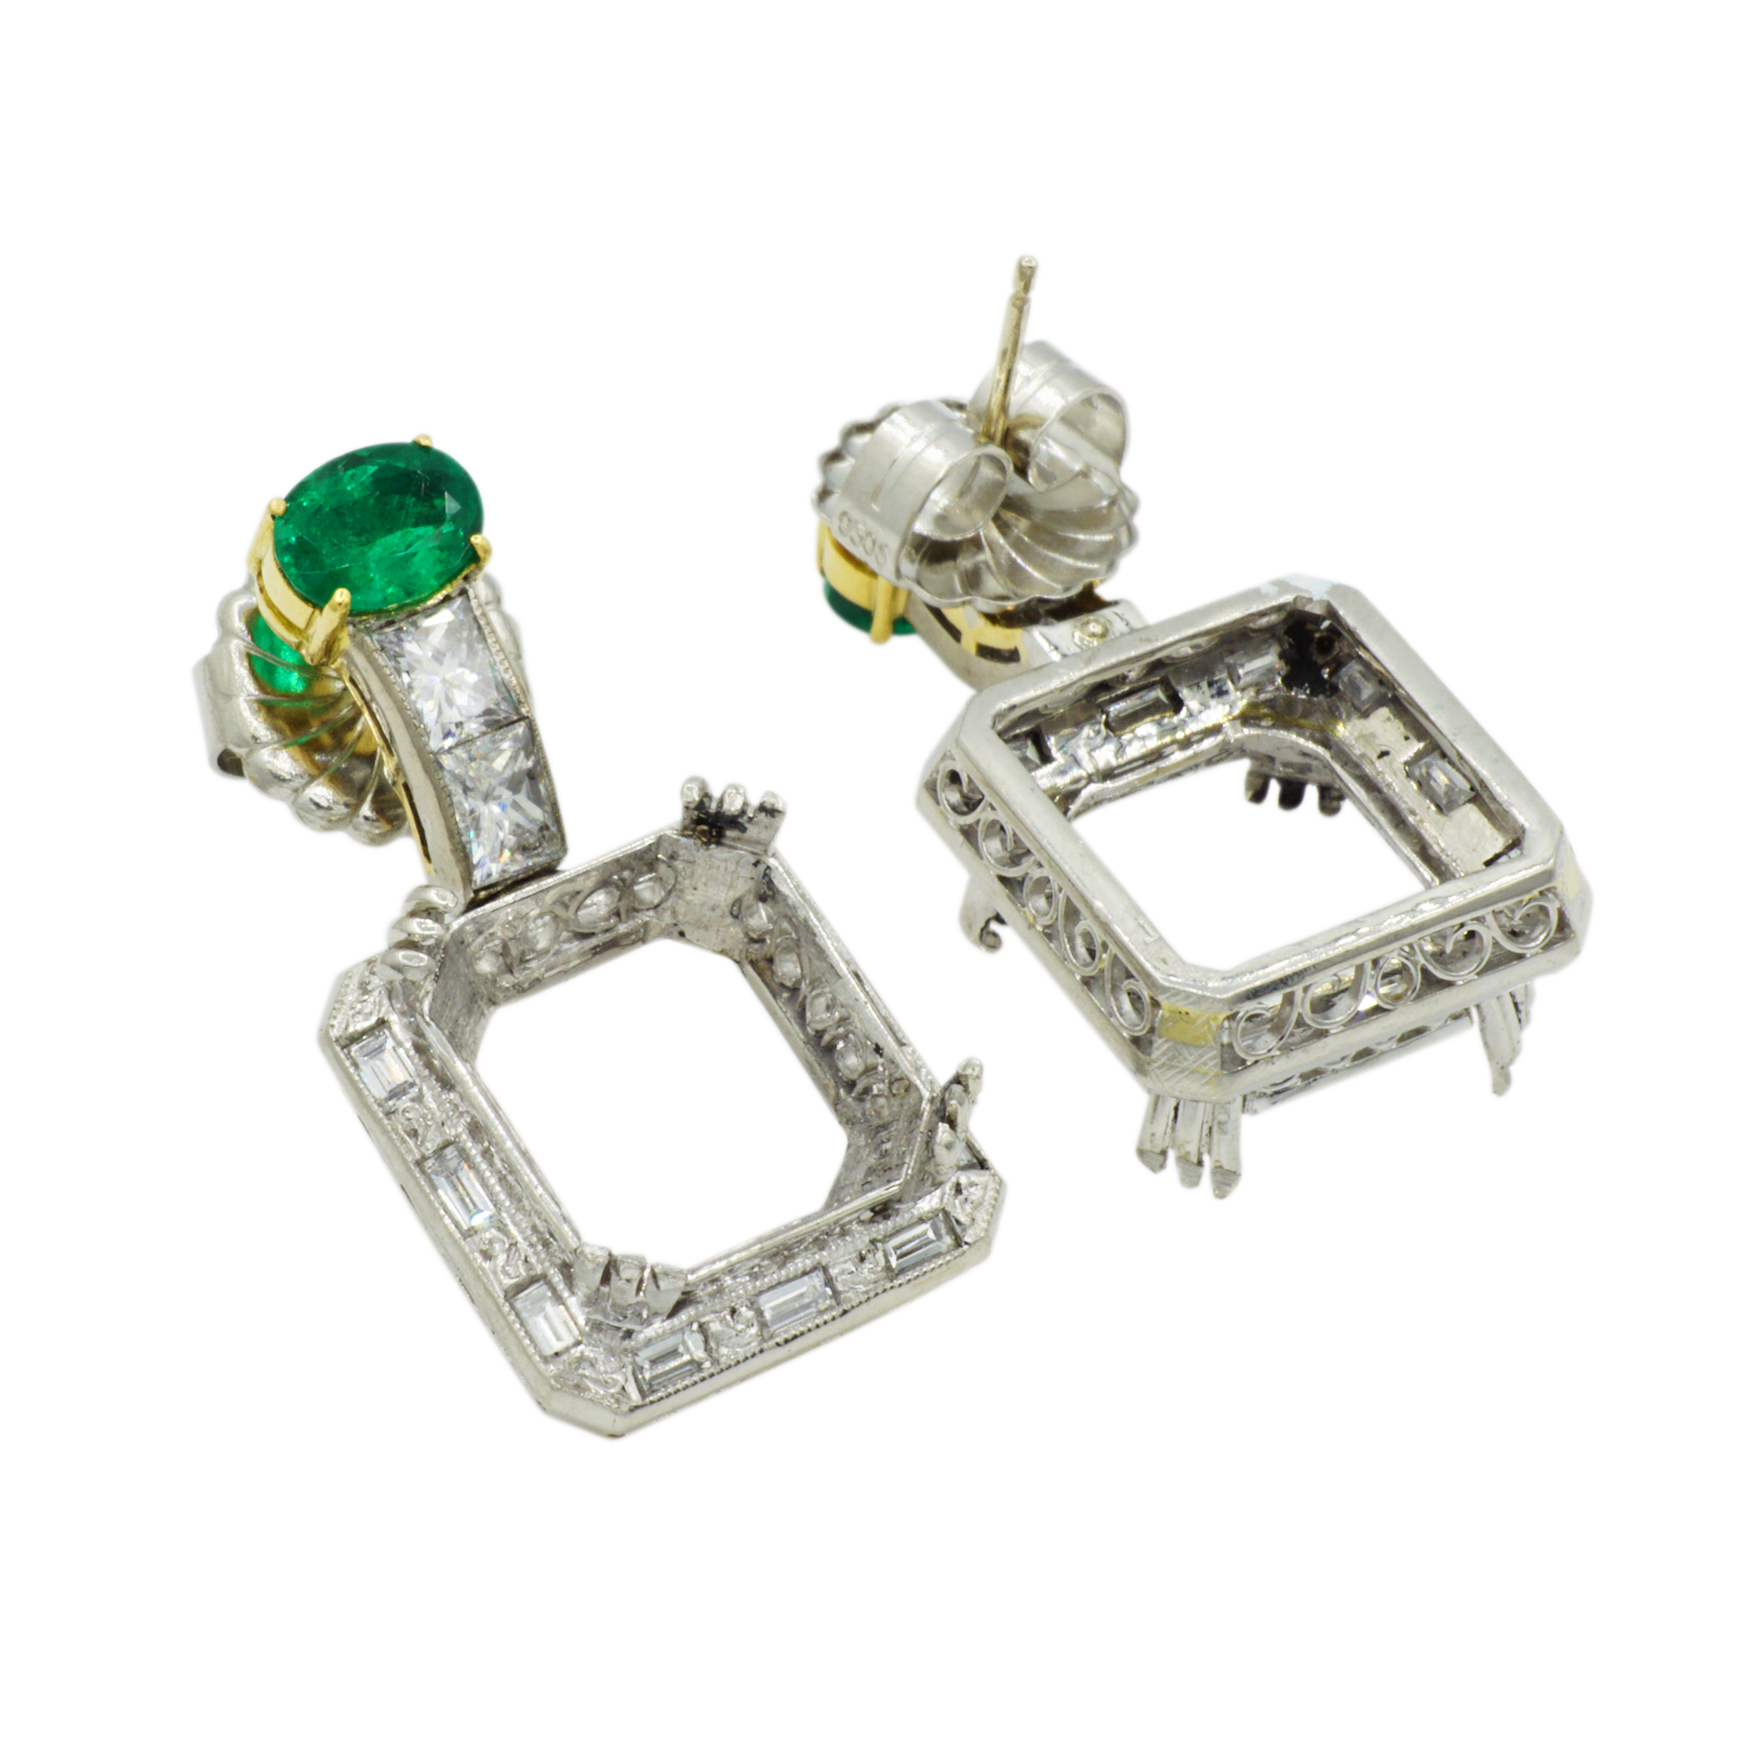 Platinum Emerald & Diamond Earring Semi-Mounting - Front and Back Profile Views